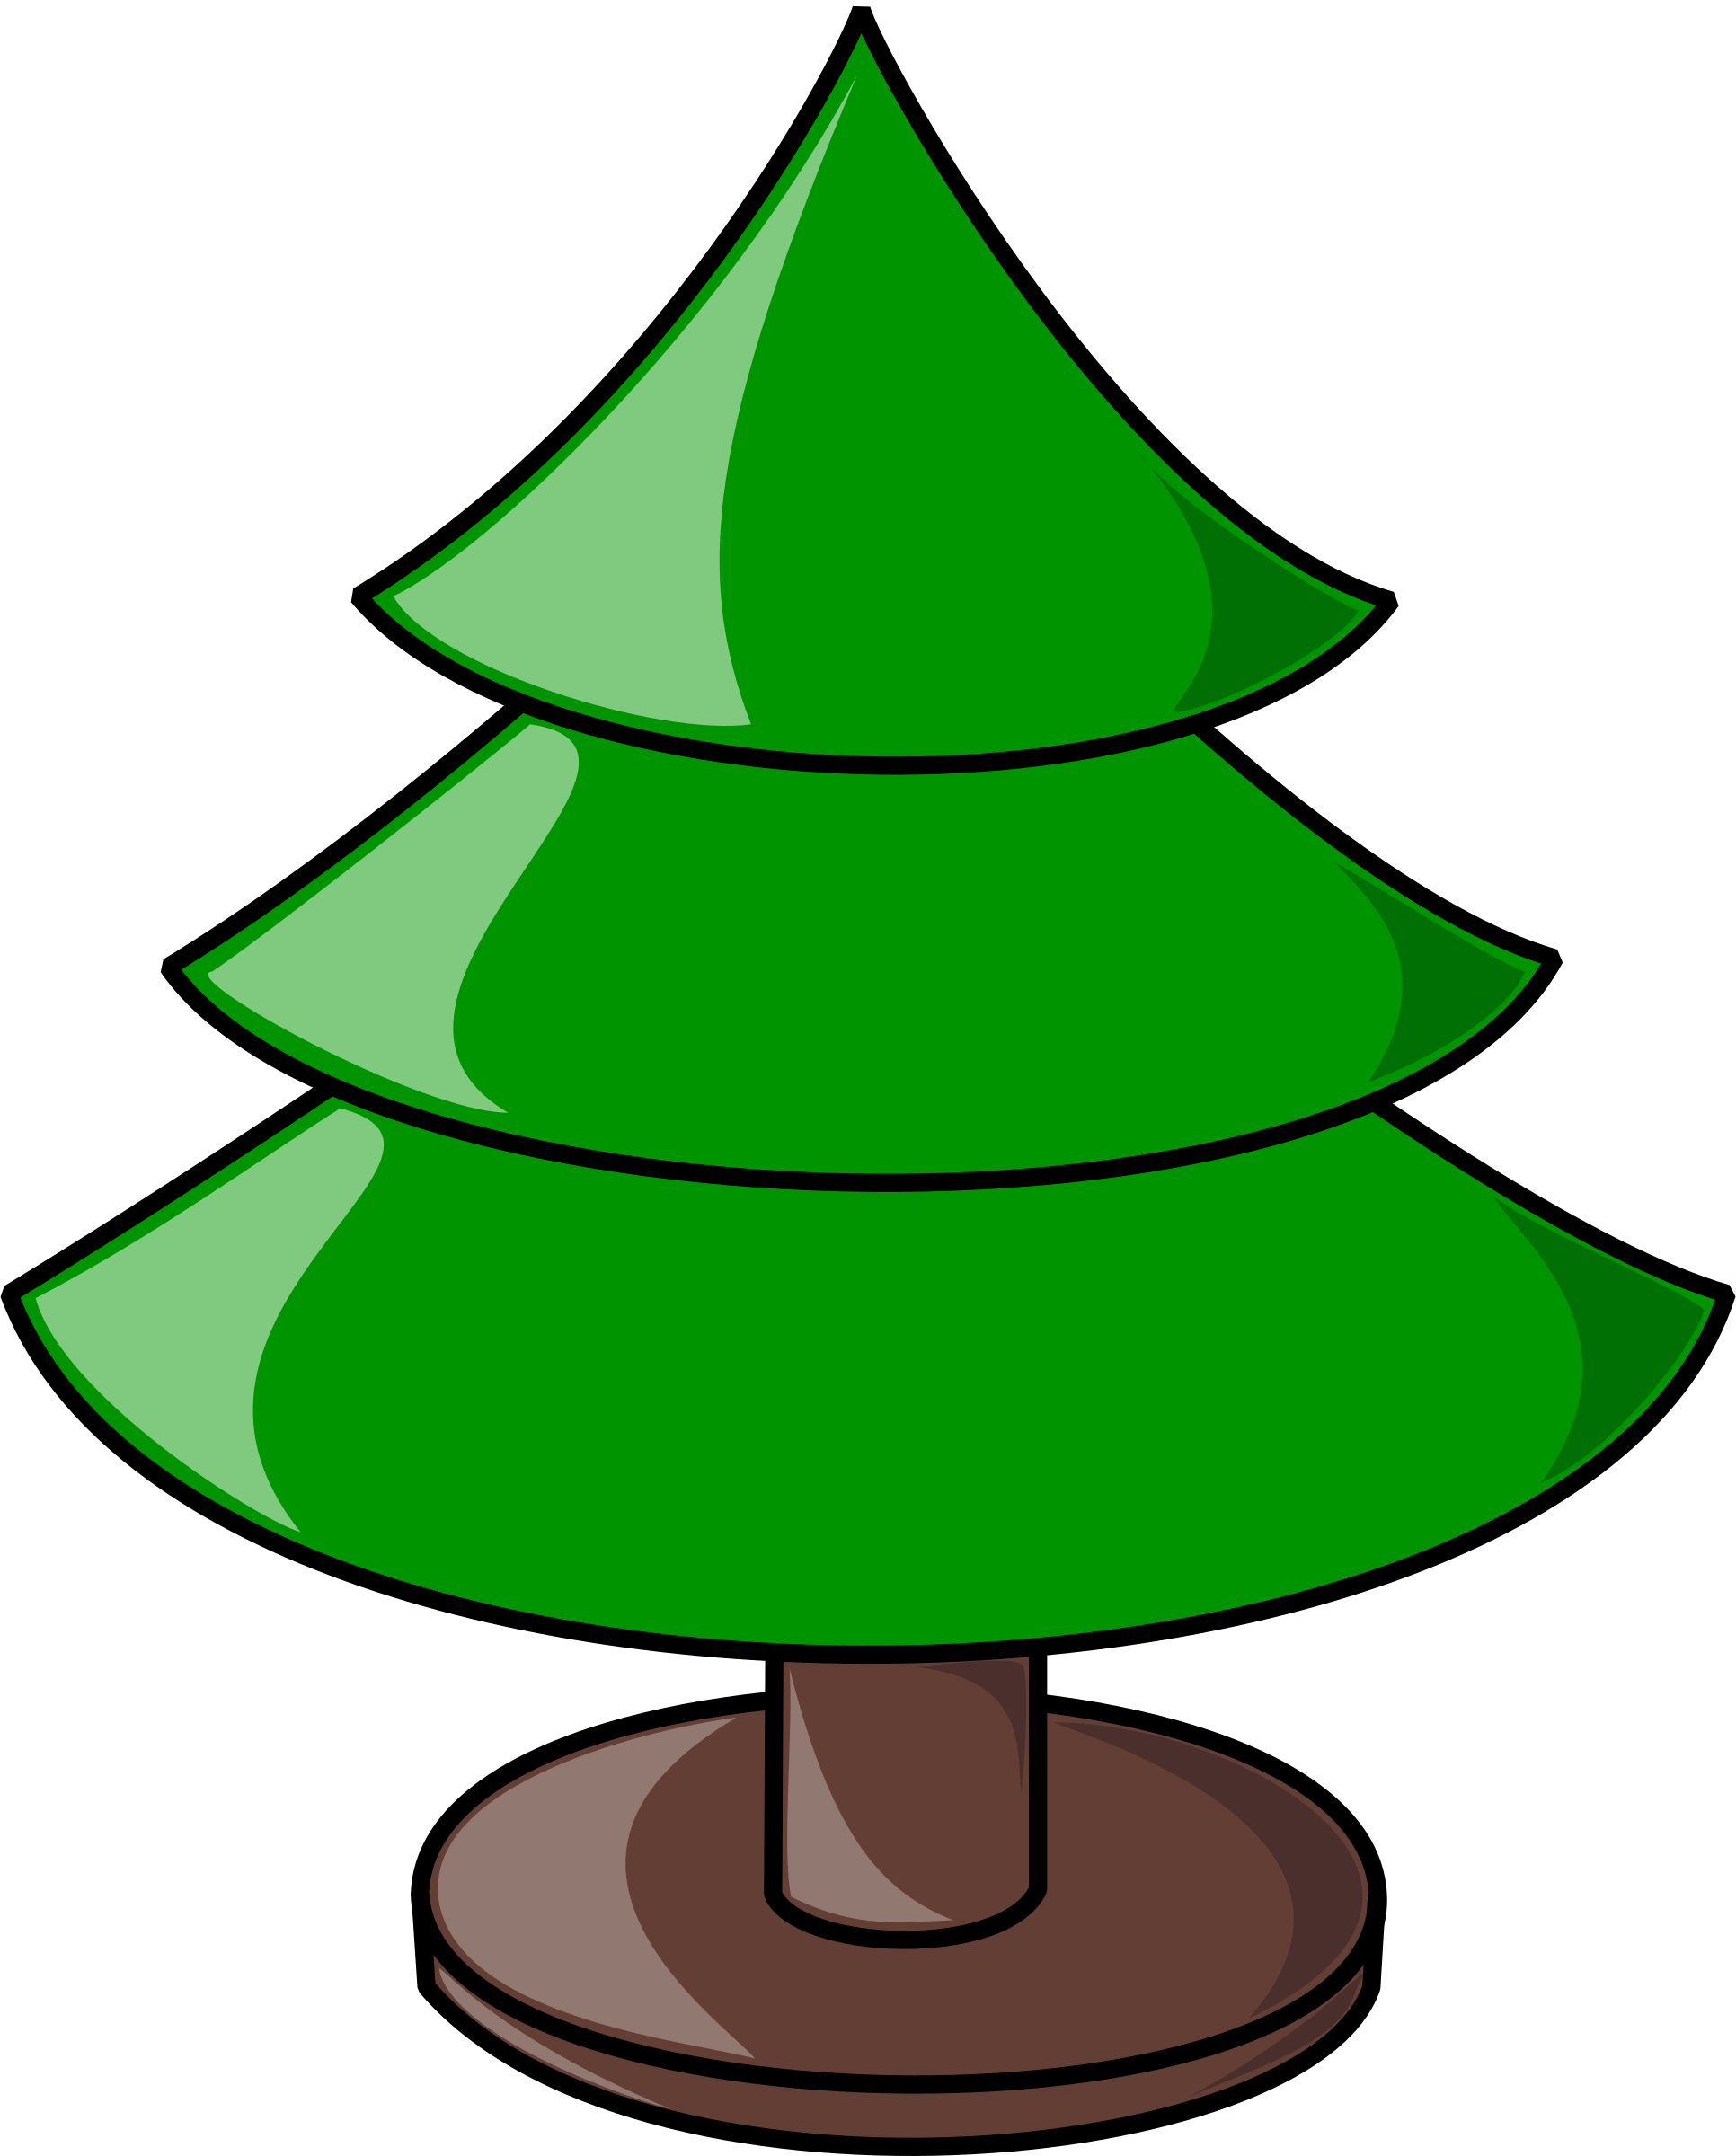 1932x2400 Elkbuntu Glossy Christmas Tree Clip Art At Clker Com Vector Plain